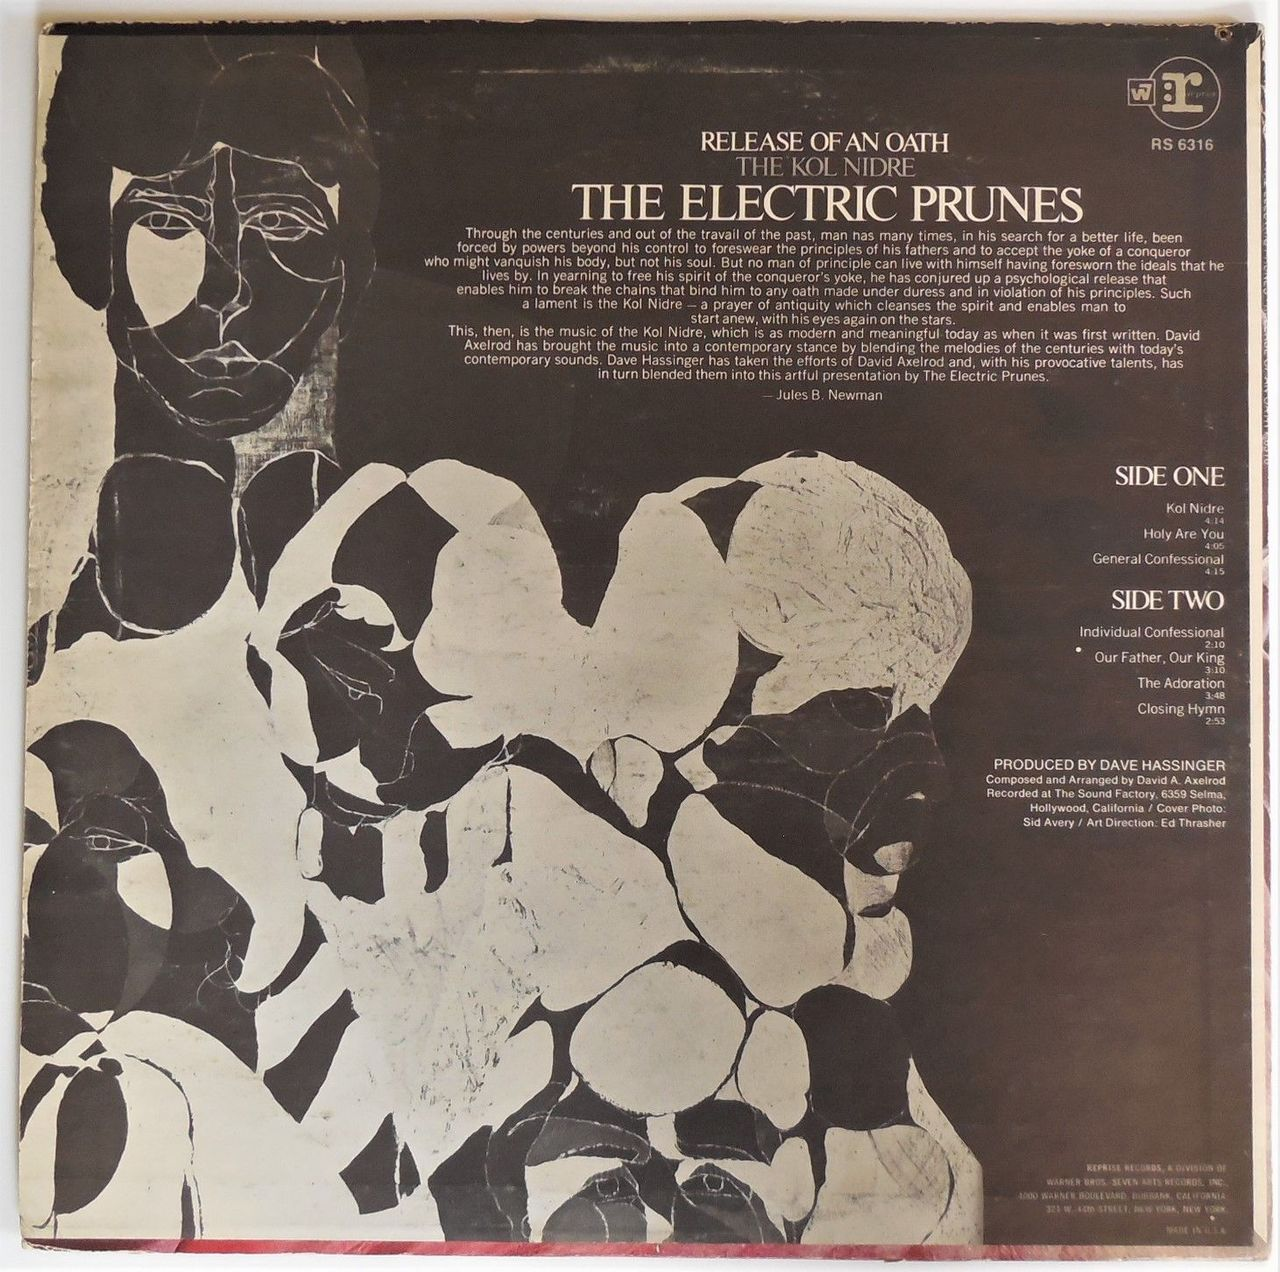 LP: The Electric Prunes on RELEASE OF AN OATH - 1968